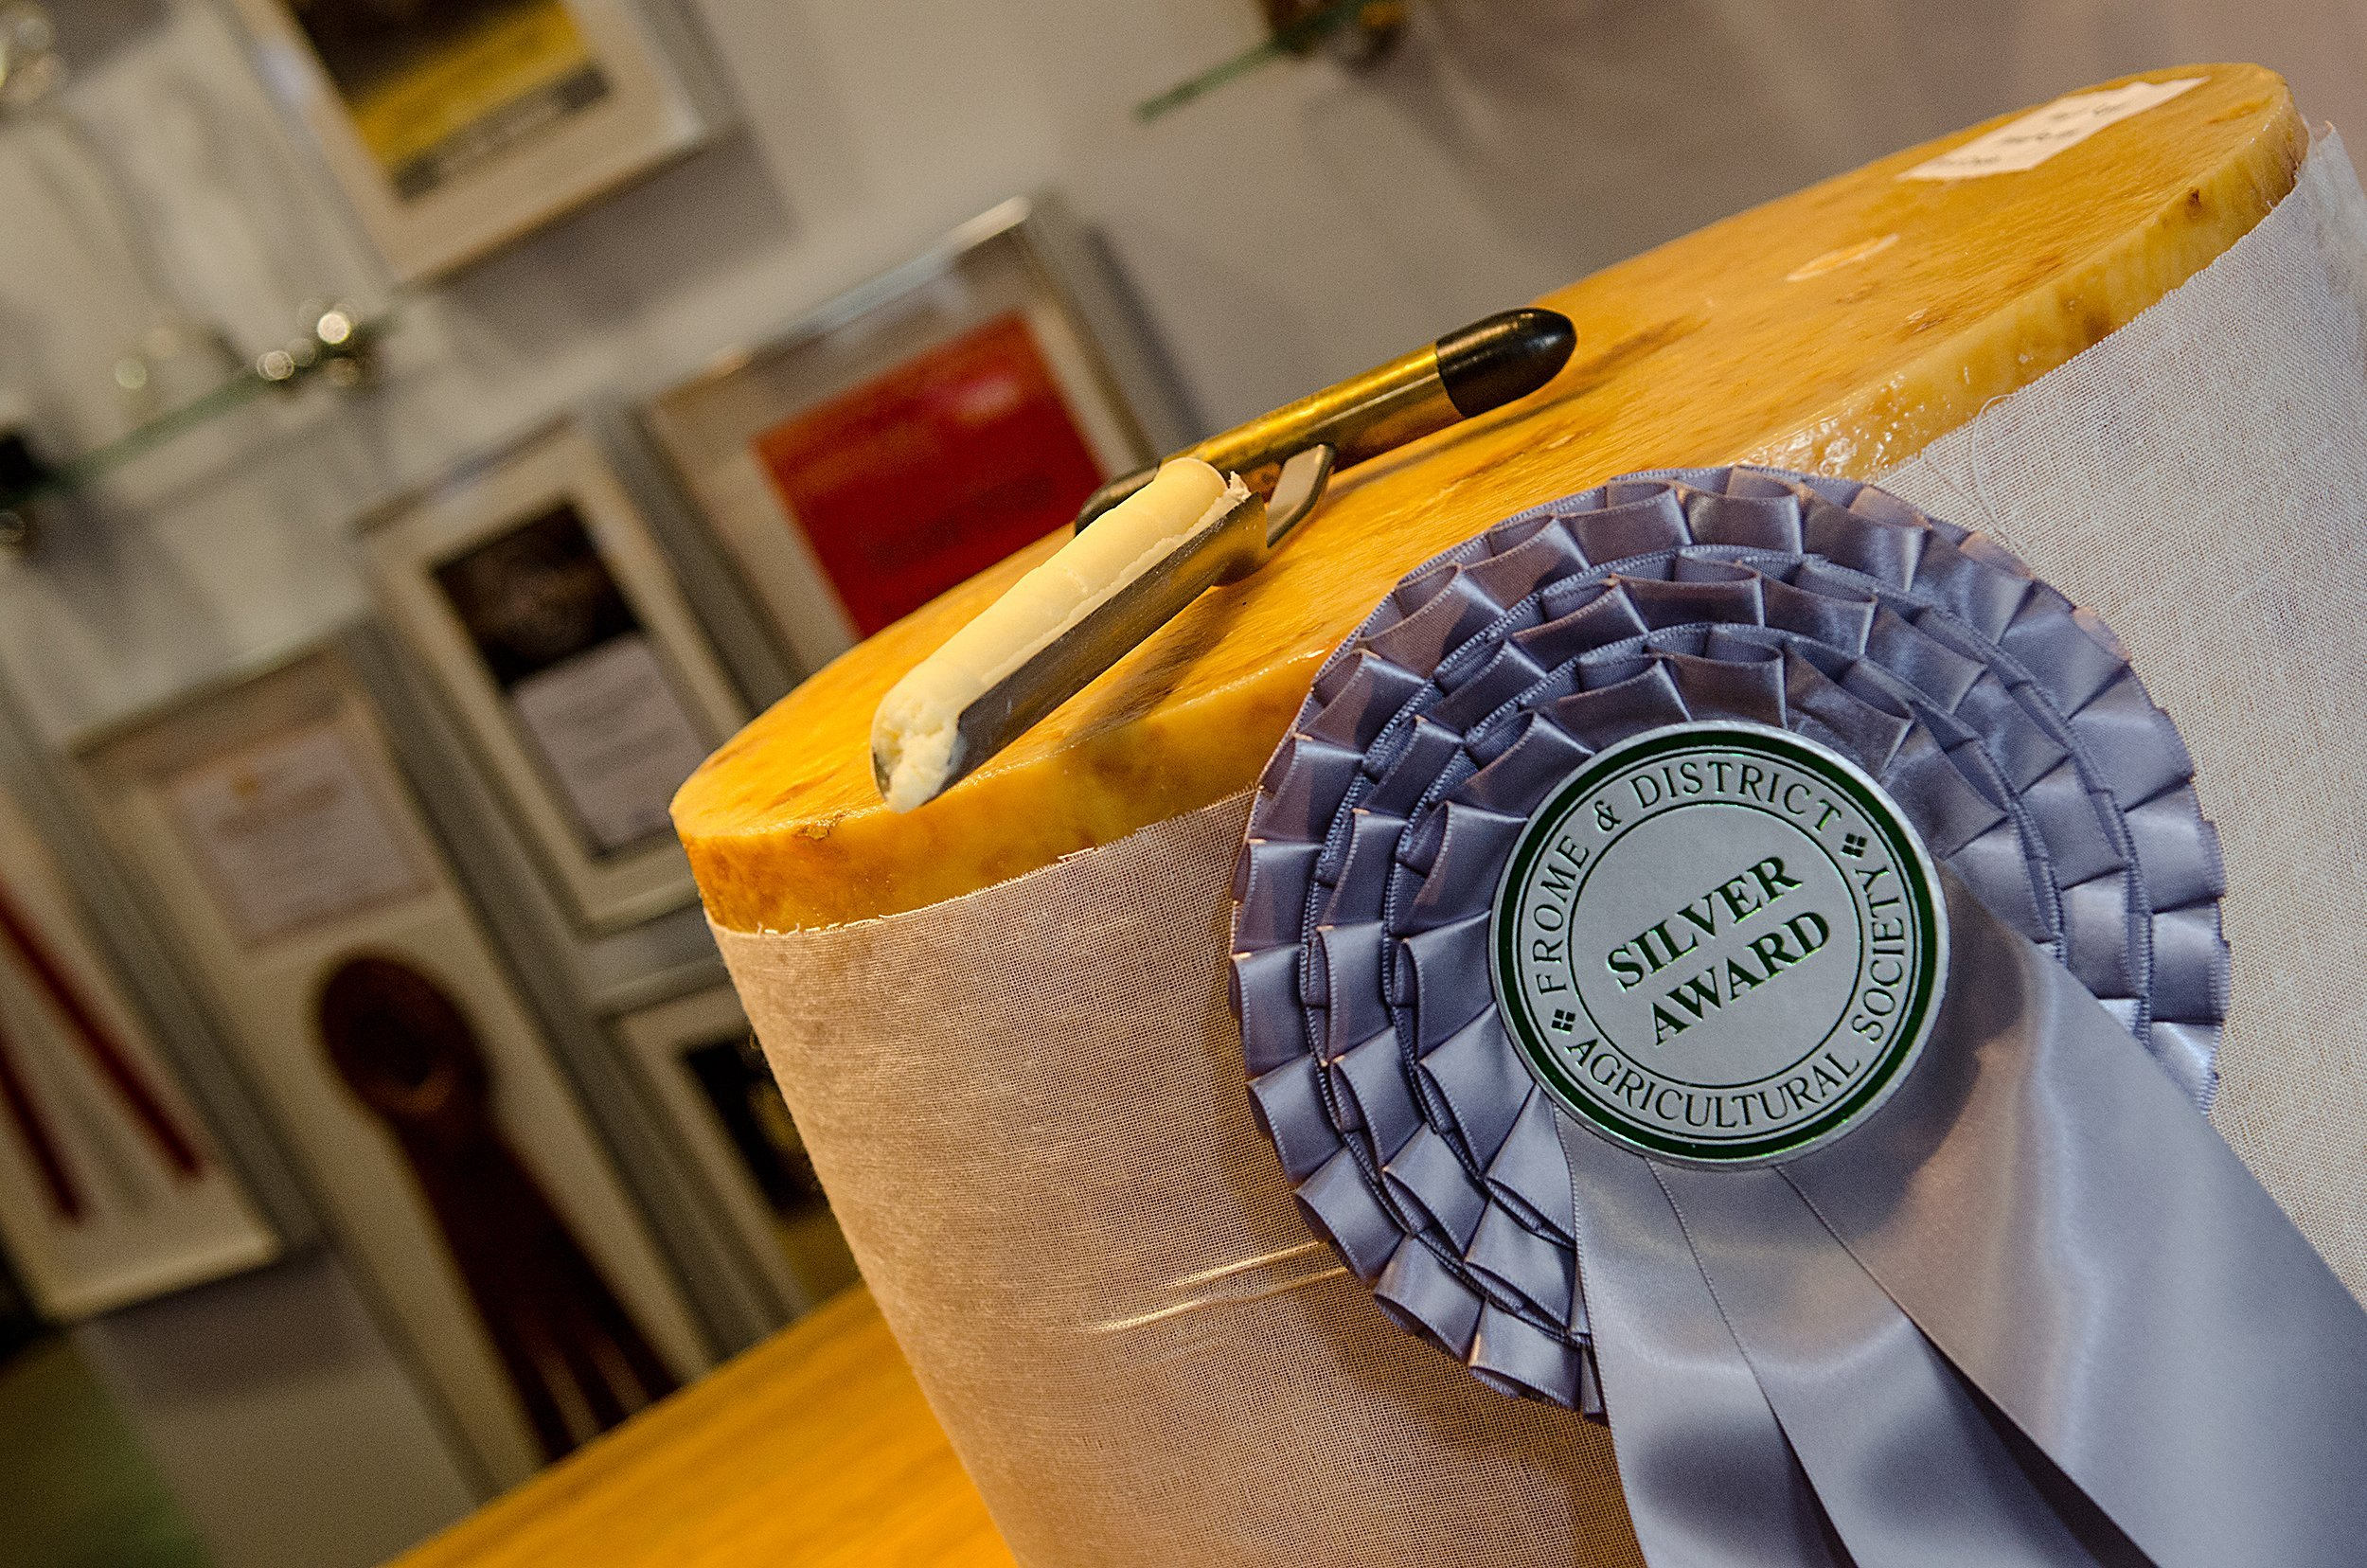 Cheddar Gorge Cheese Company Silver Award Winner